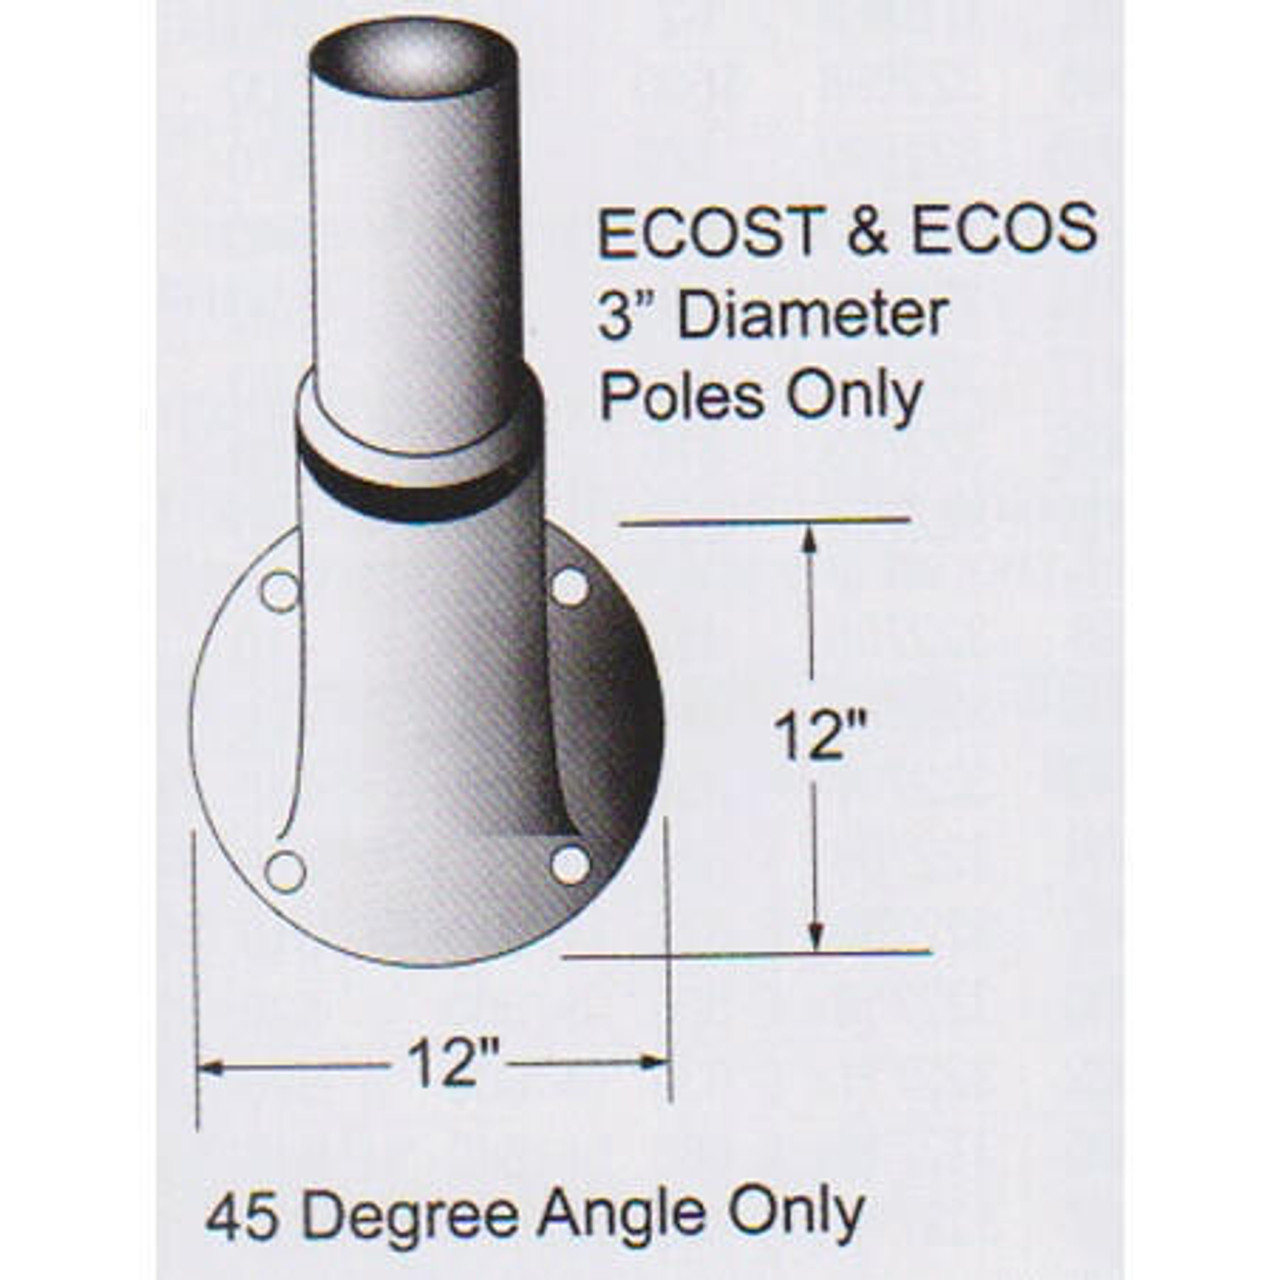 8 Non-Tapered Wall Mount for Flagpole ECOS8